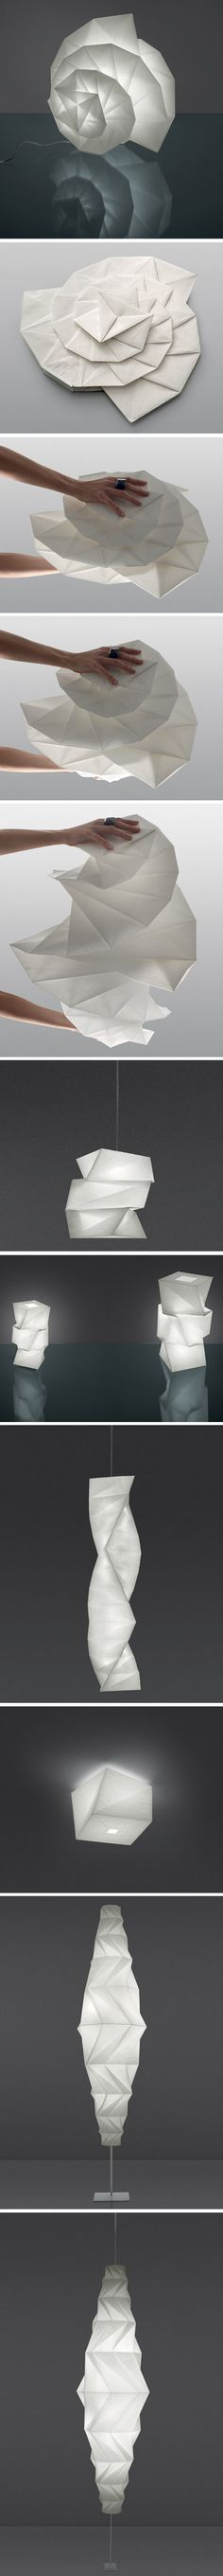 Issey Miyake's foldable lamps made of paper. I saw them in real life, I was jealous he had the idea before me as I still were at the stage of designing them.